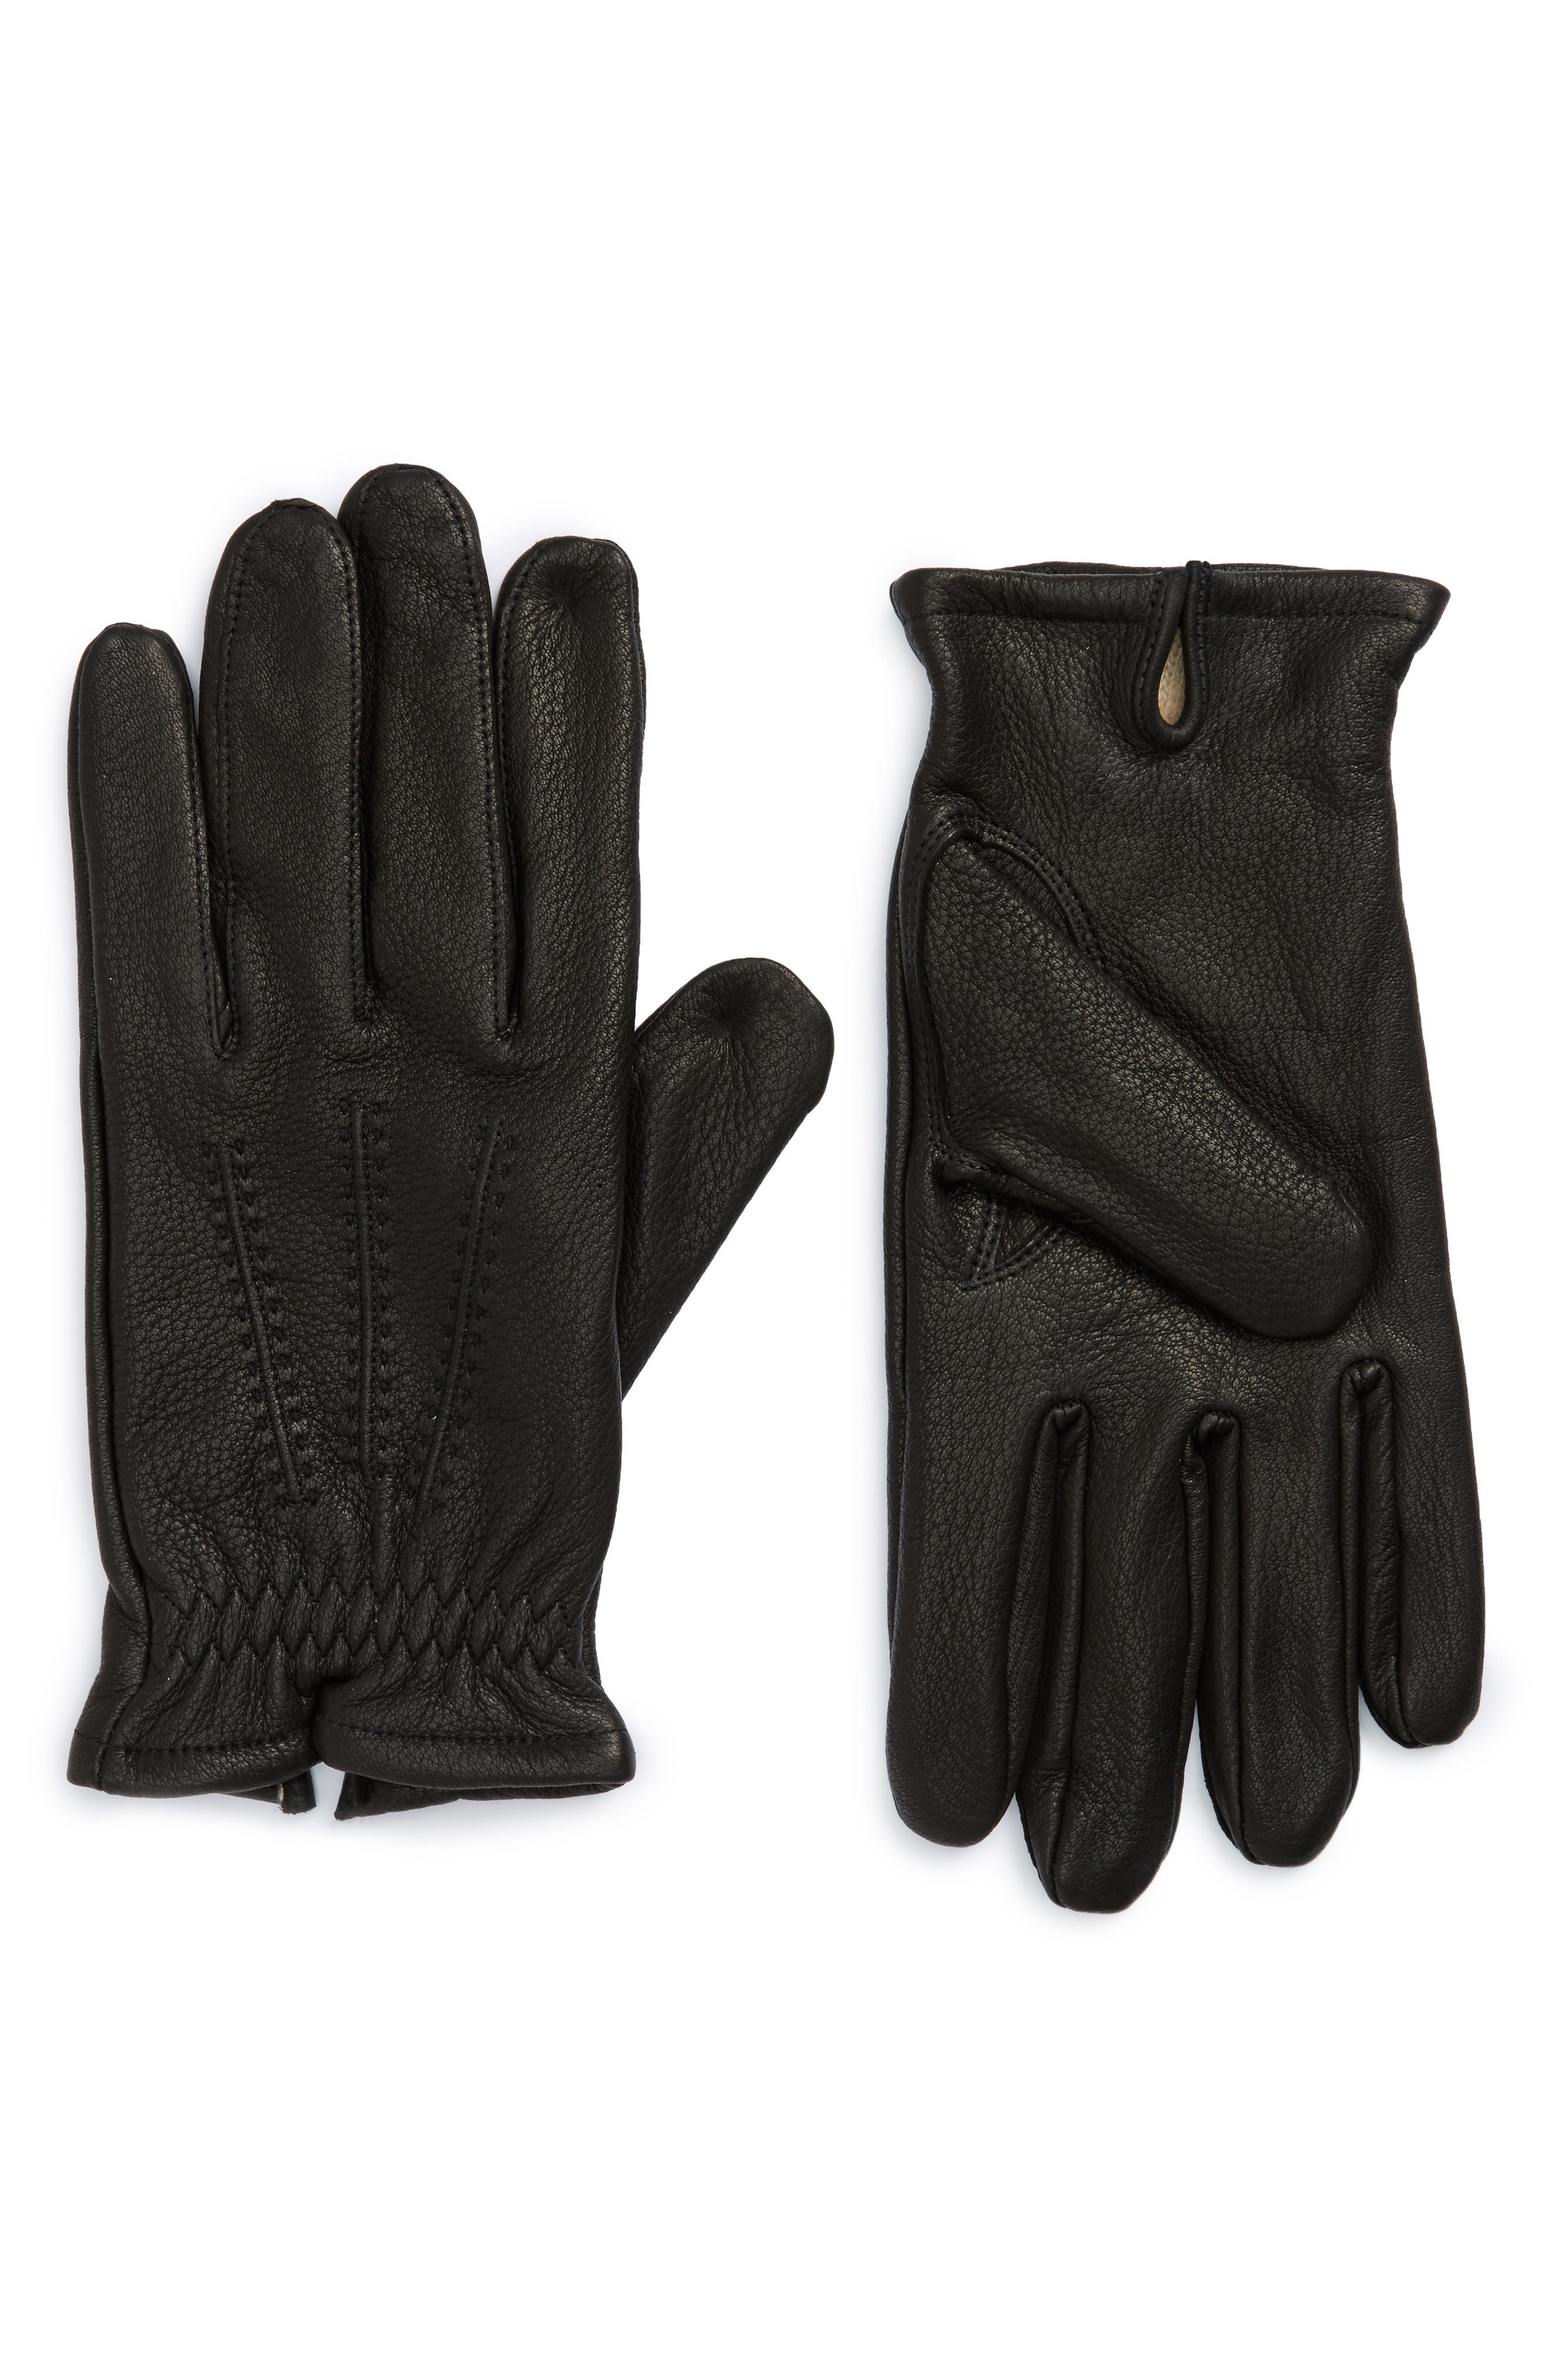 Deerskin Leather Gloves,                             Main thumbnail 1, color,                             001